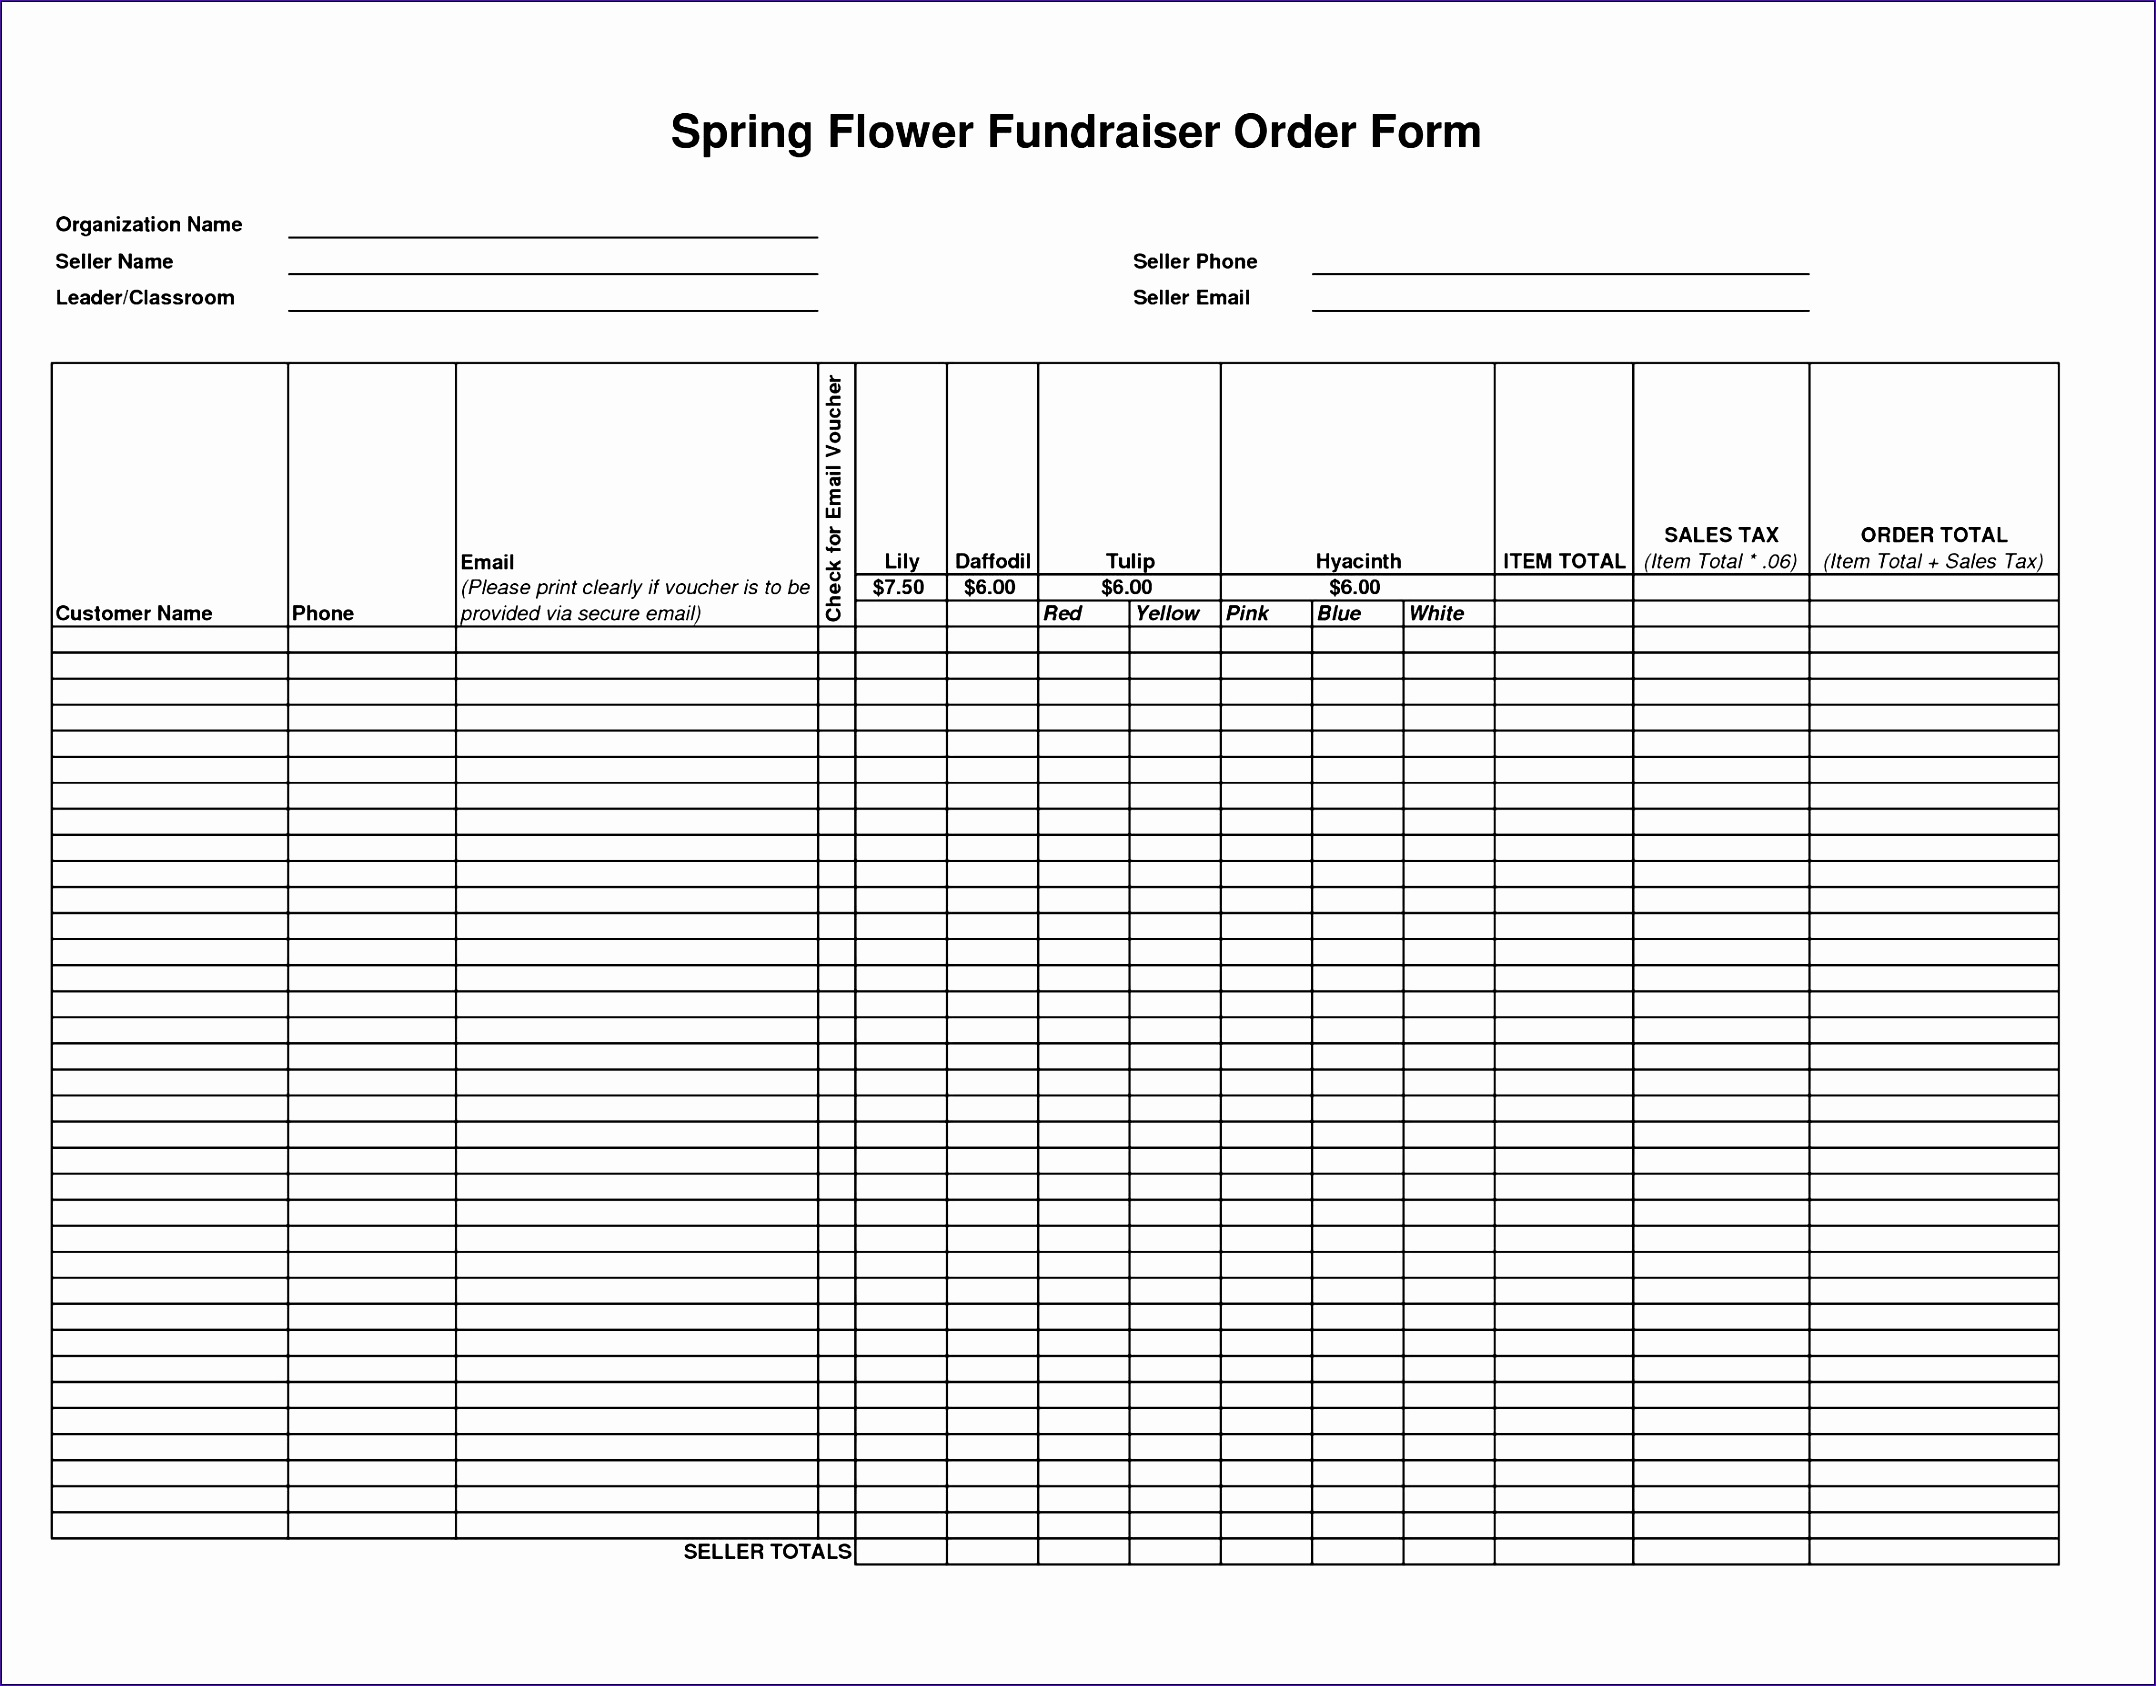 Product order form Template Excel K0rpn Awesome Flower Fundraiser order forms Template Besttemplates123